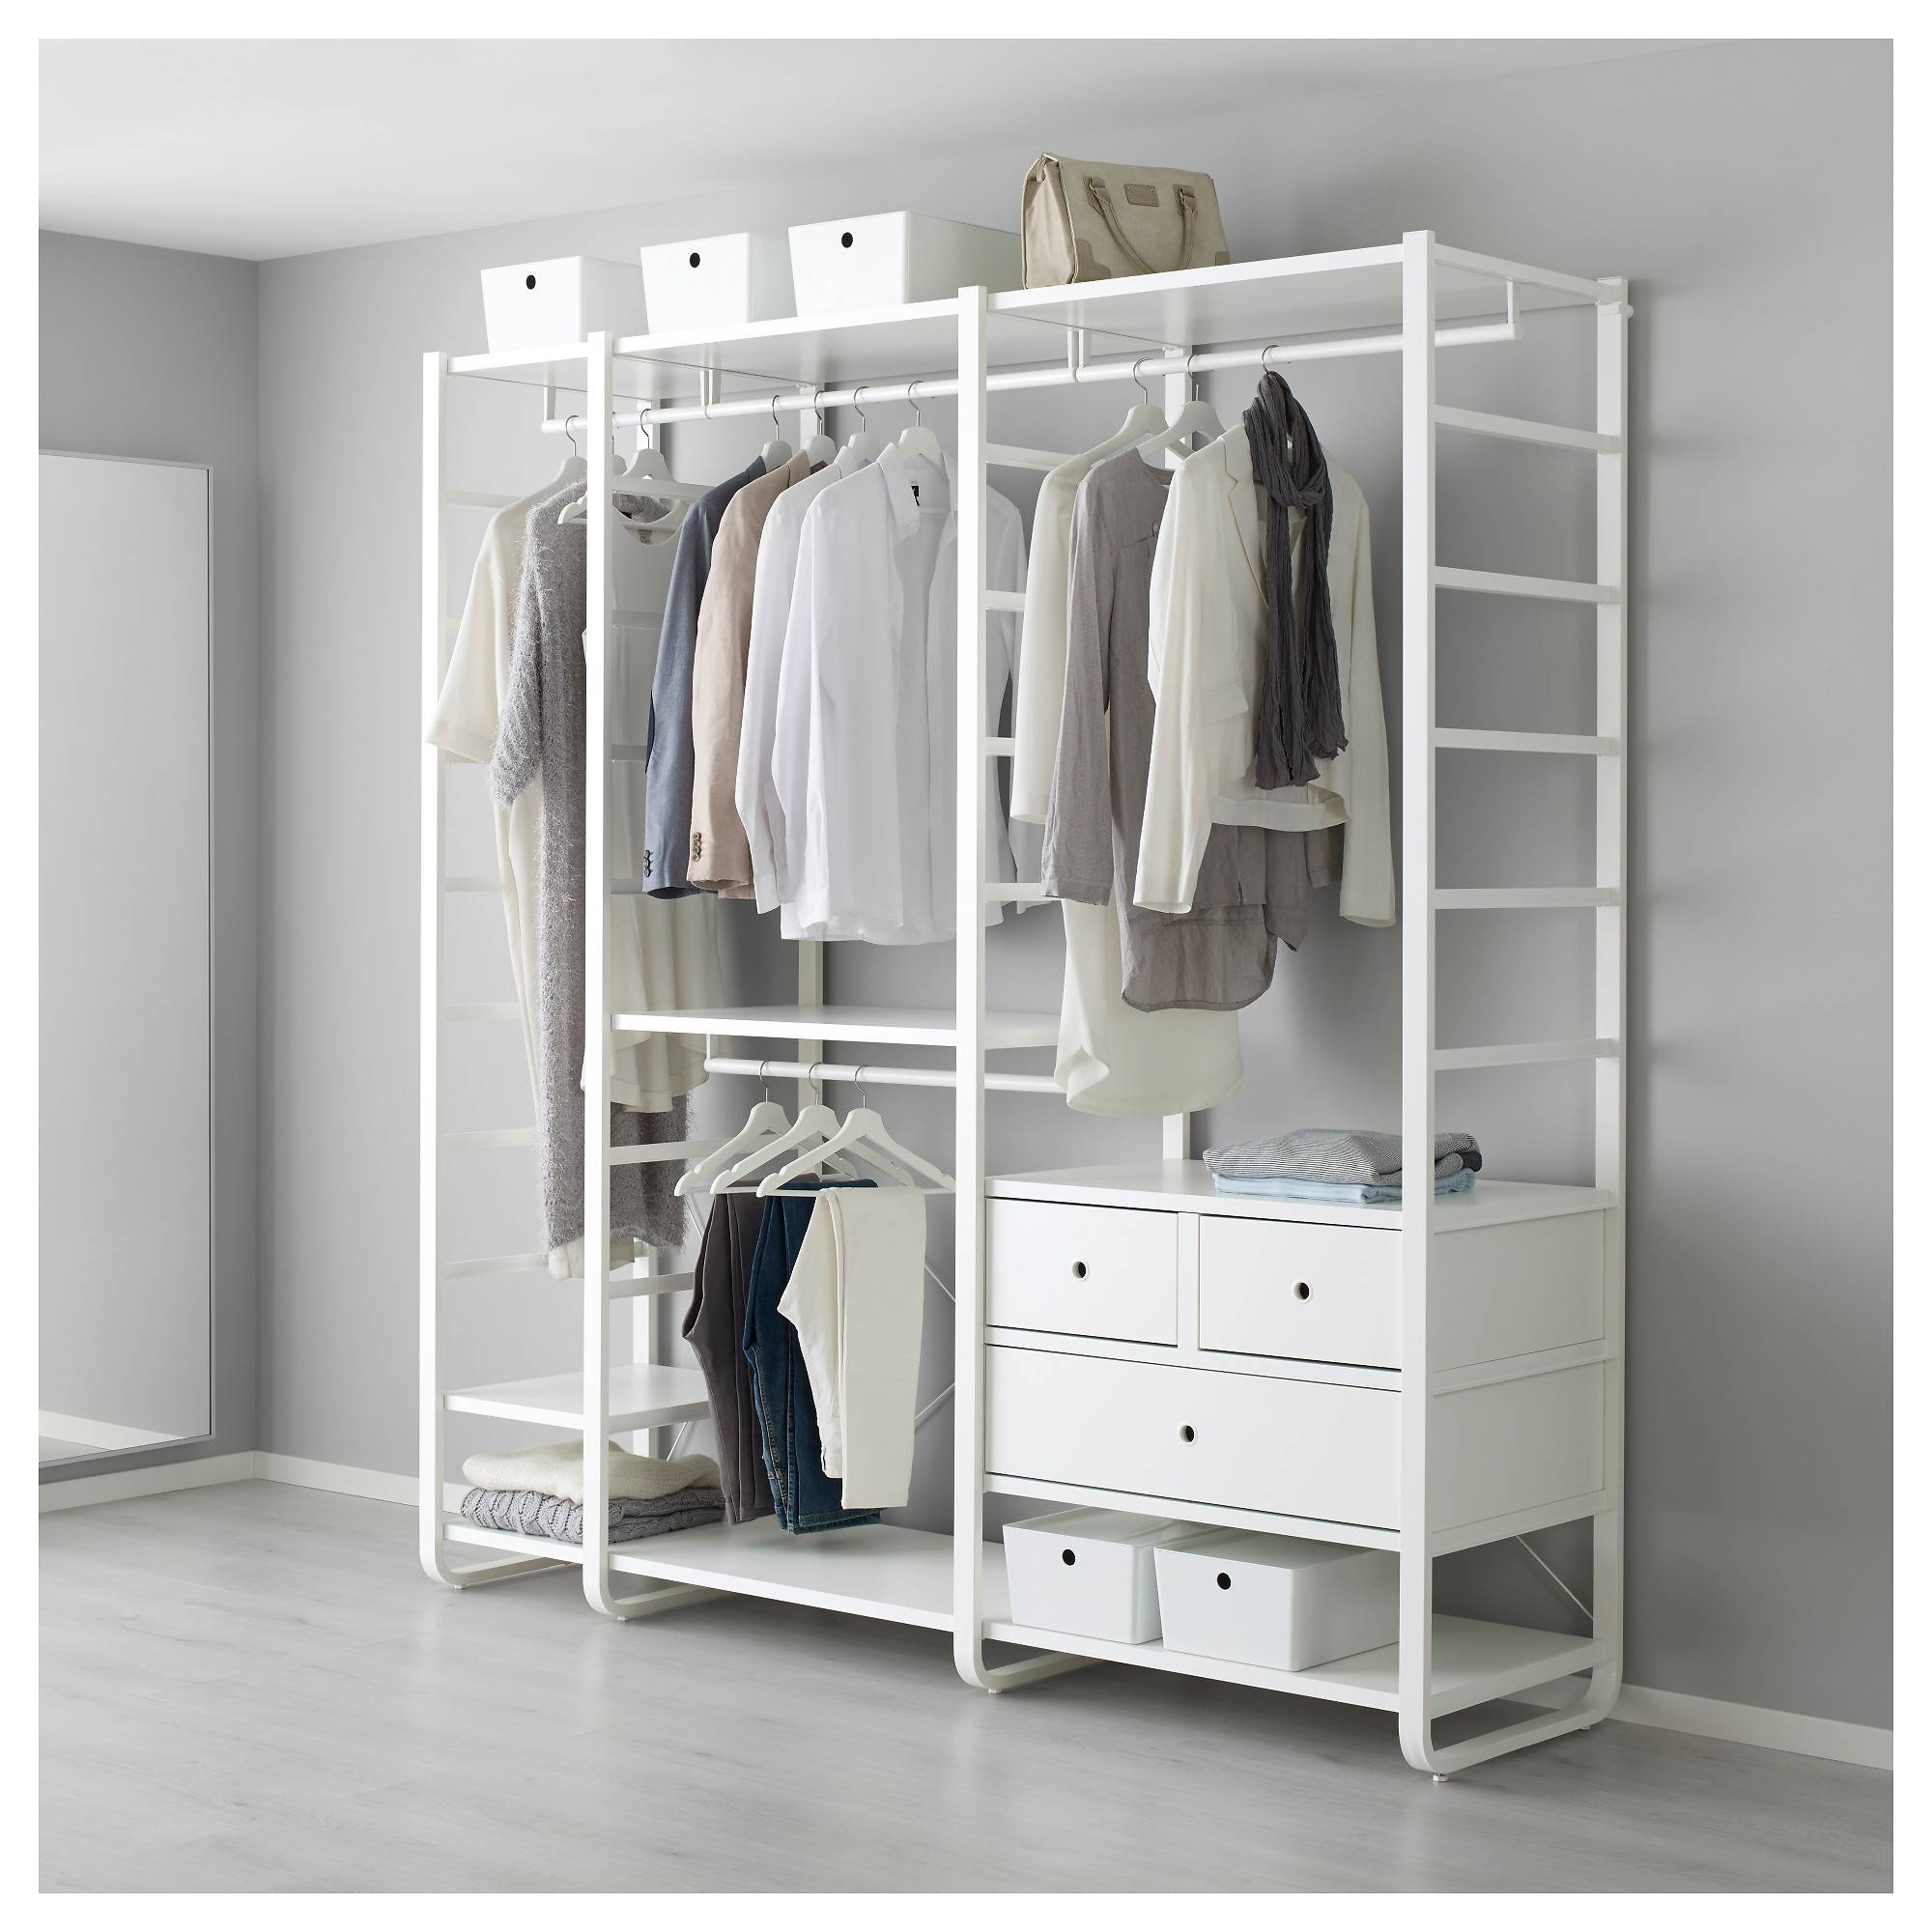 Elvarli System - Side Unit Combinations - Ikea pertaining to Wardrobe Drawers and Shelves Ikea (Image 10 of 30)